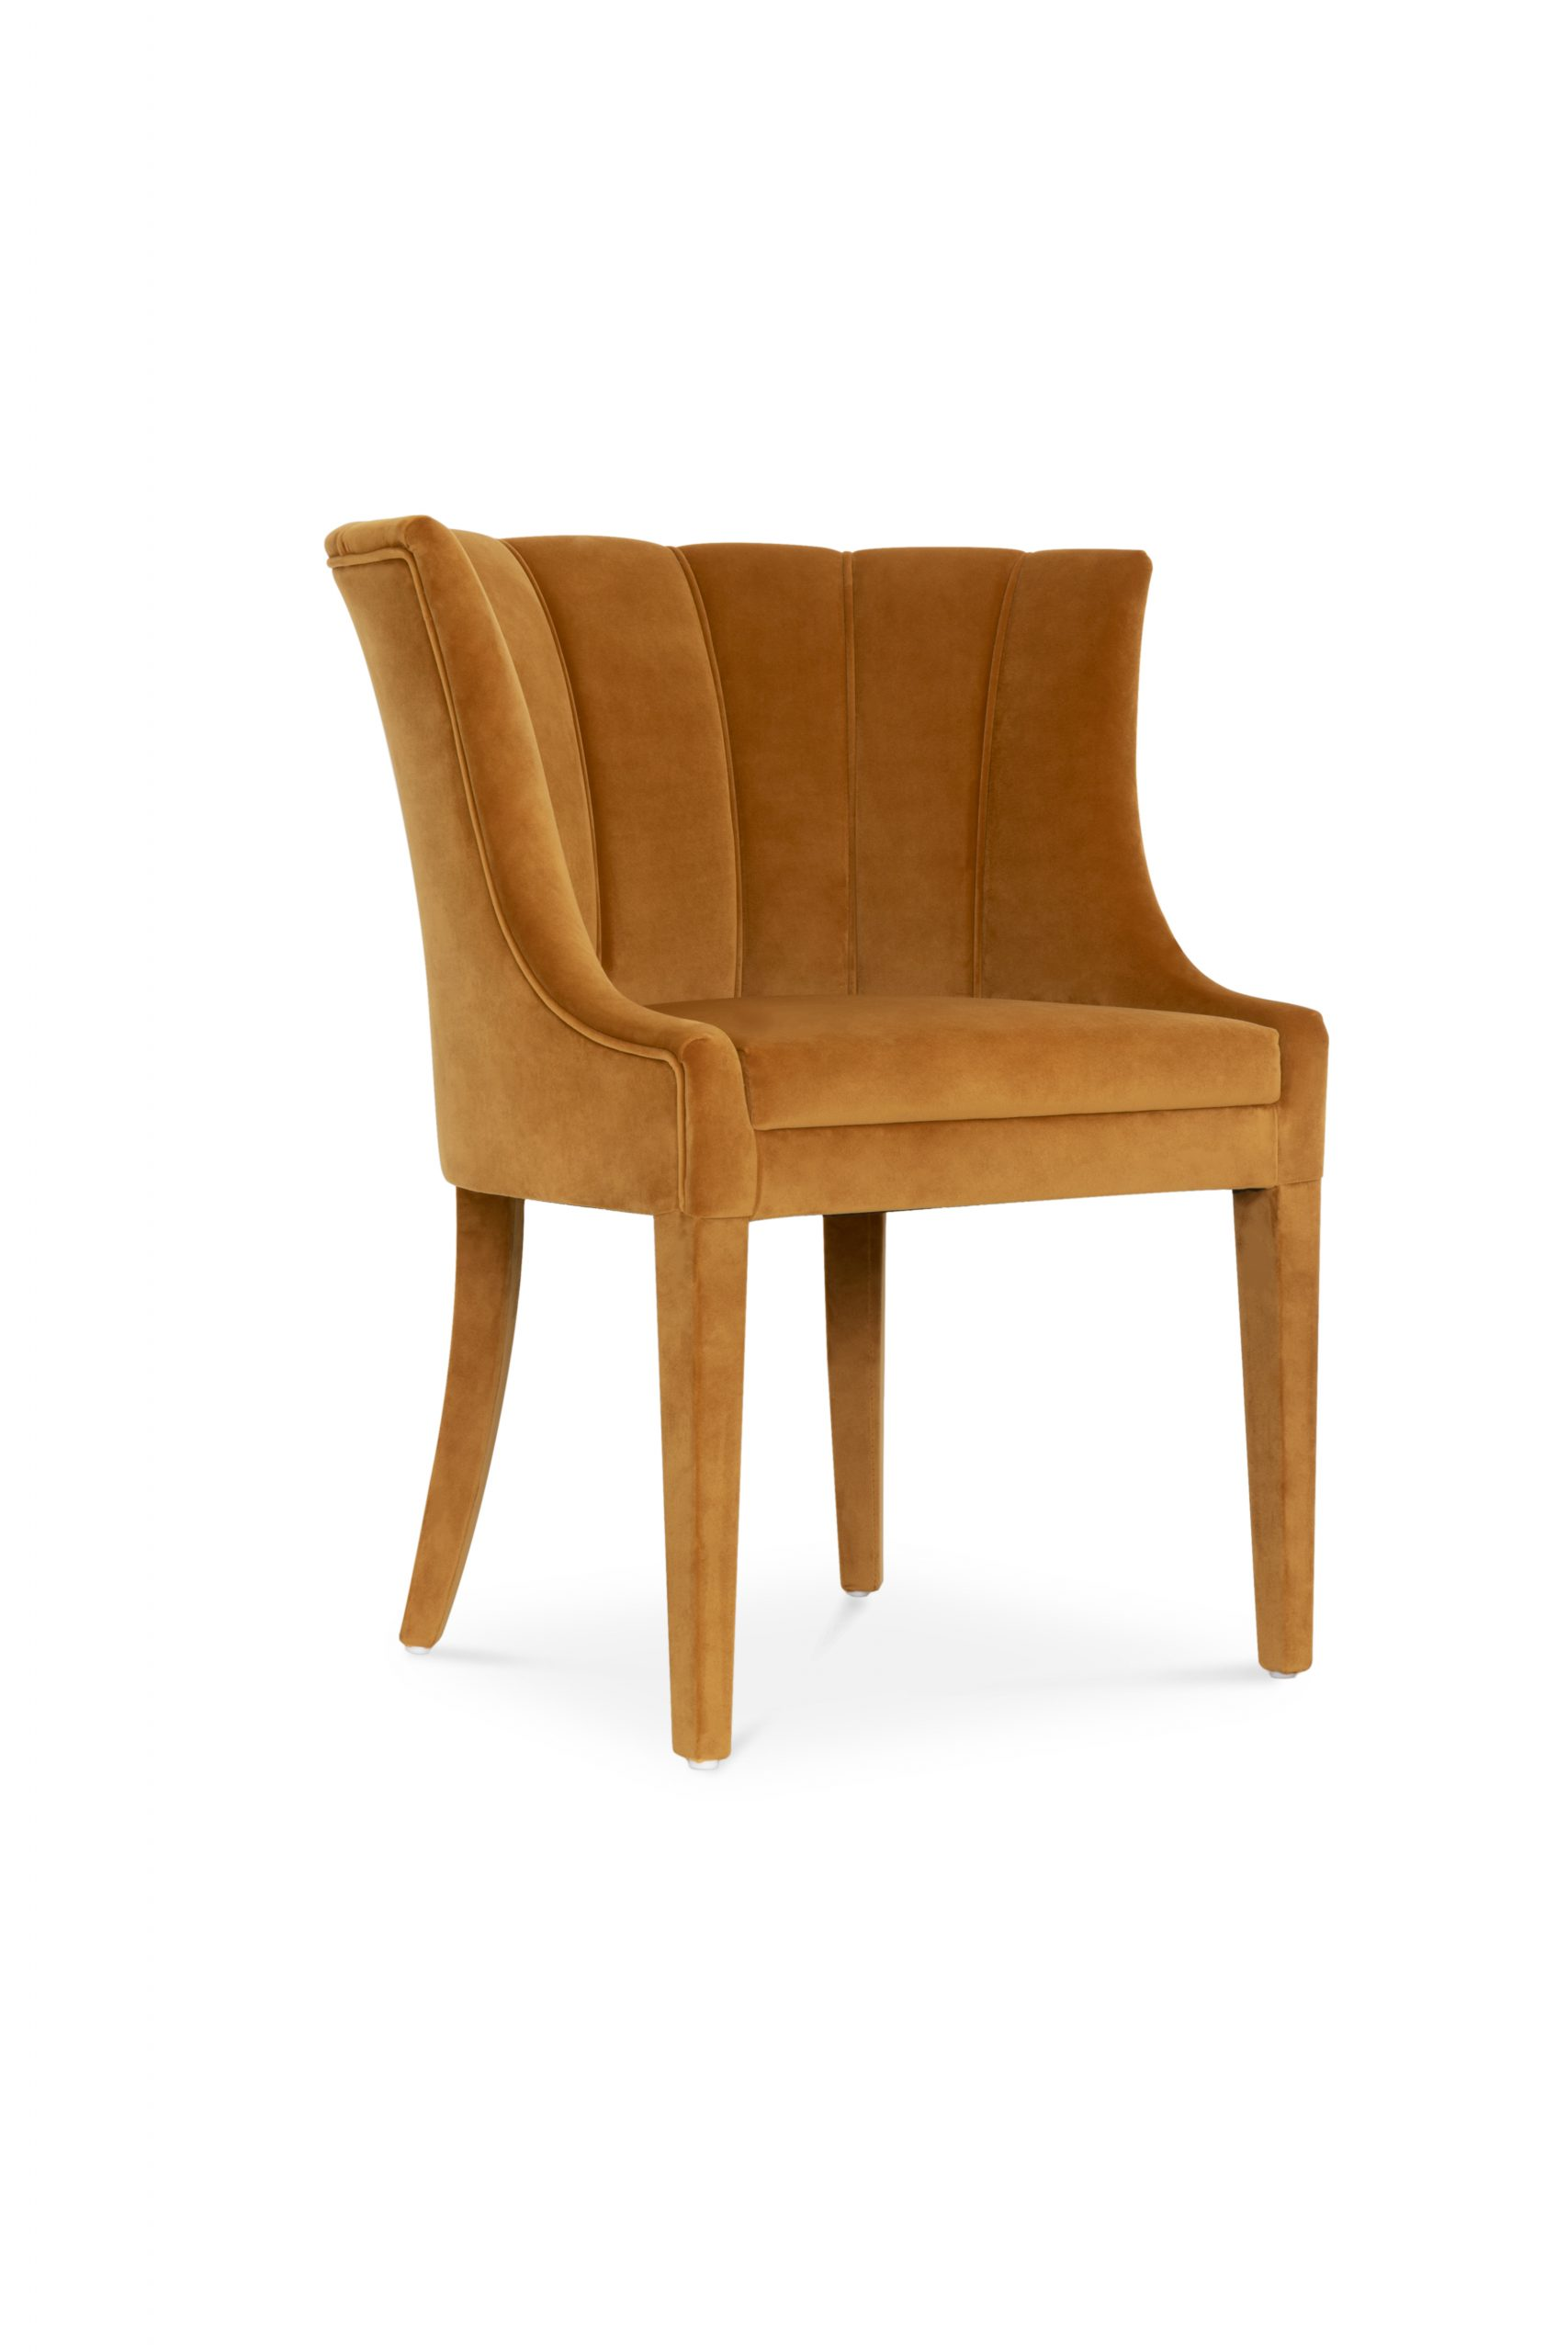 Modern Dining Chairs: Discover The Contemporary Super Nova Dining Room modern dining chairs Modern Dining Chairs: Discover The Contemporary Super Nova Dining Room BB begonia dining 2 scaled